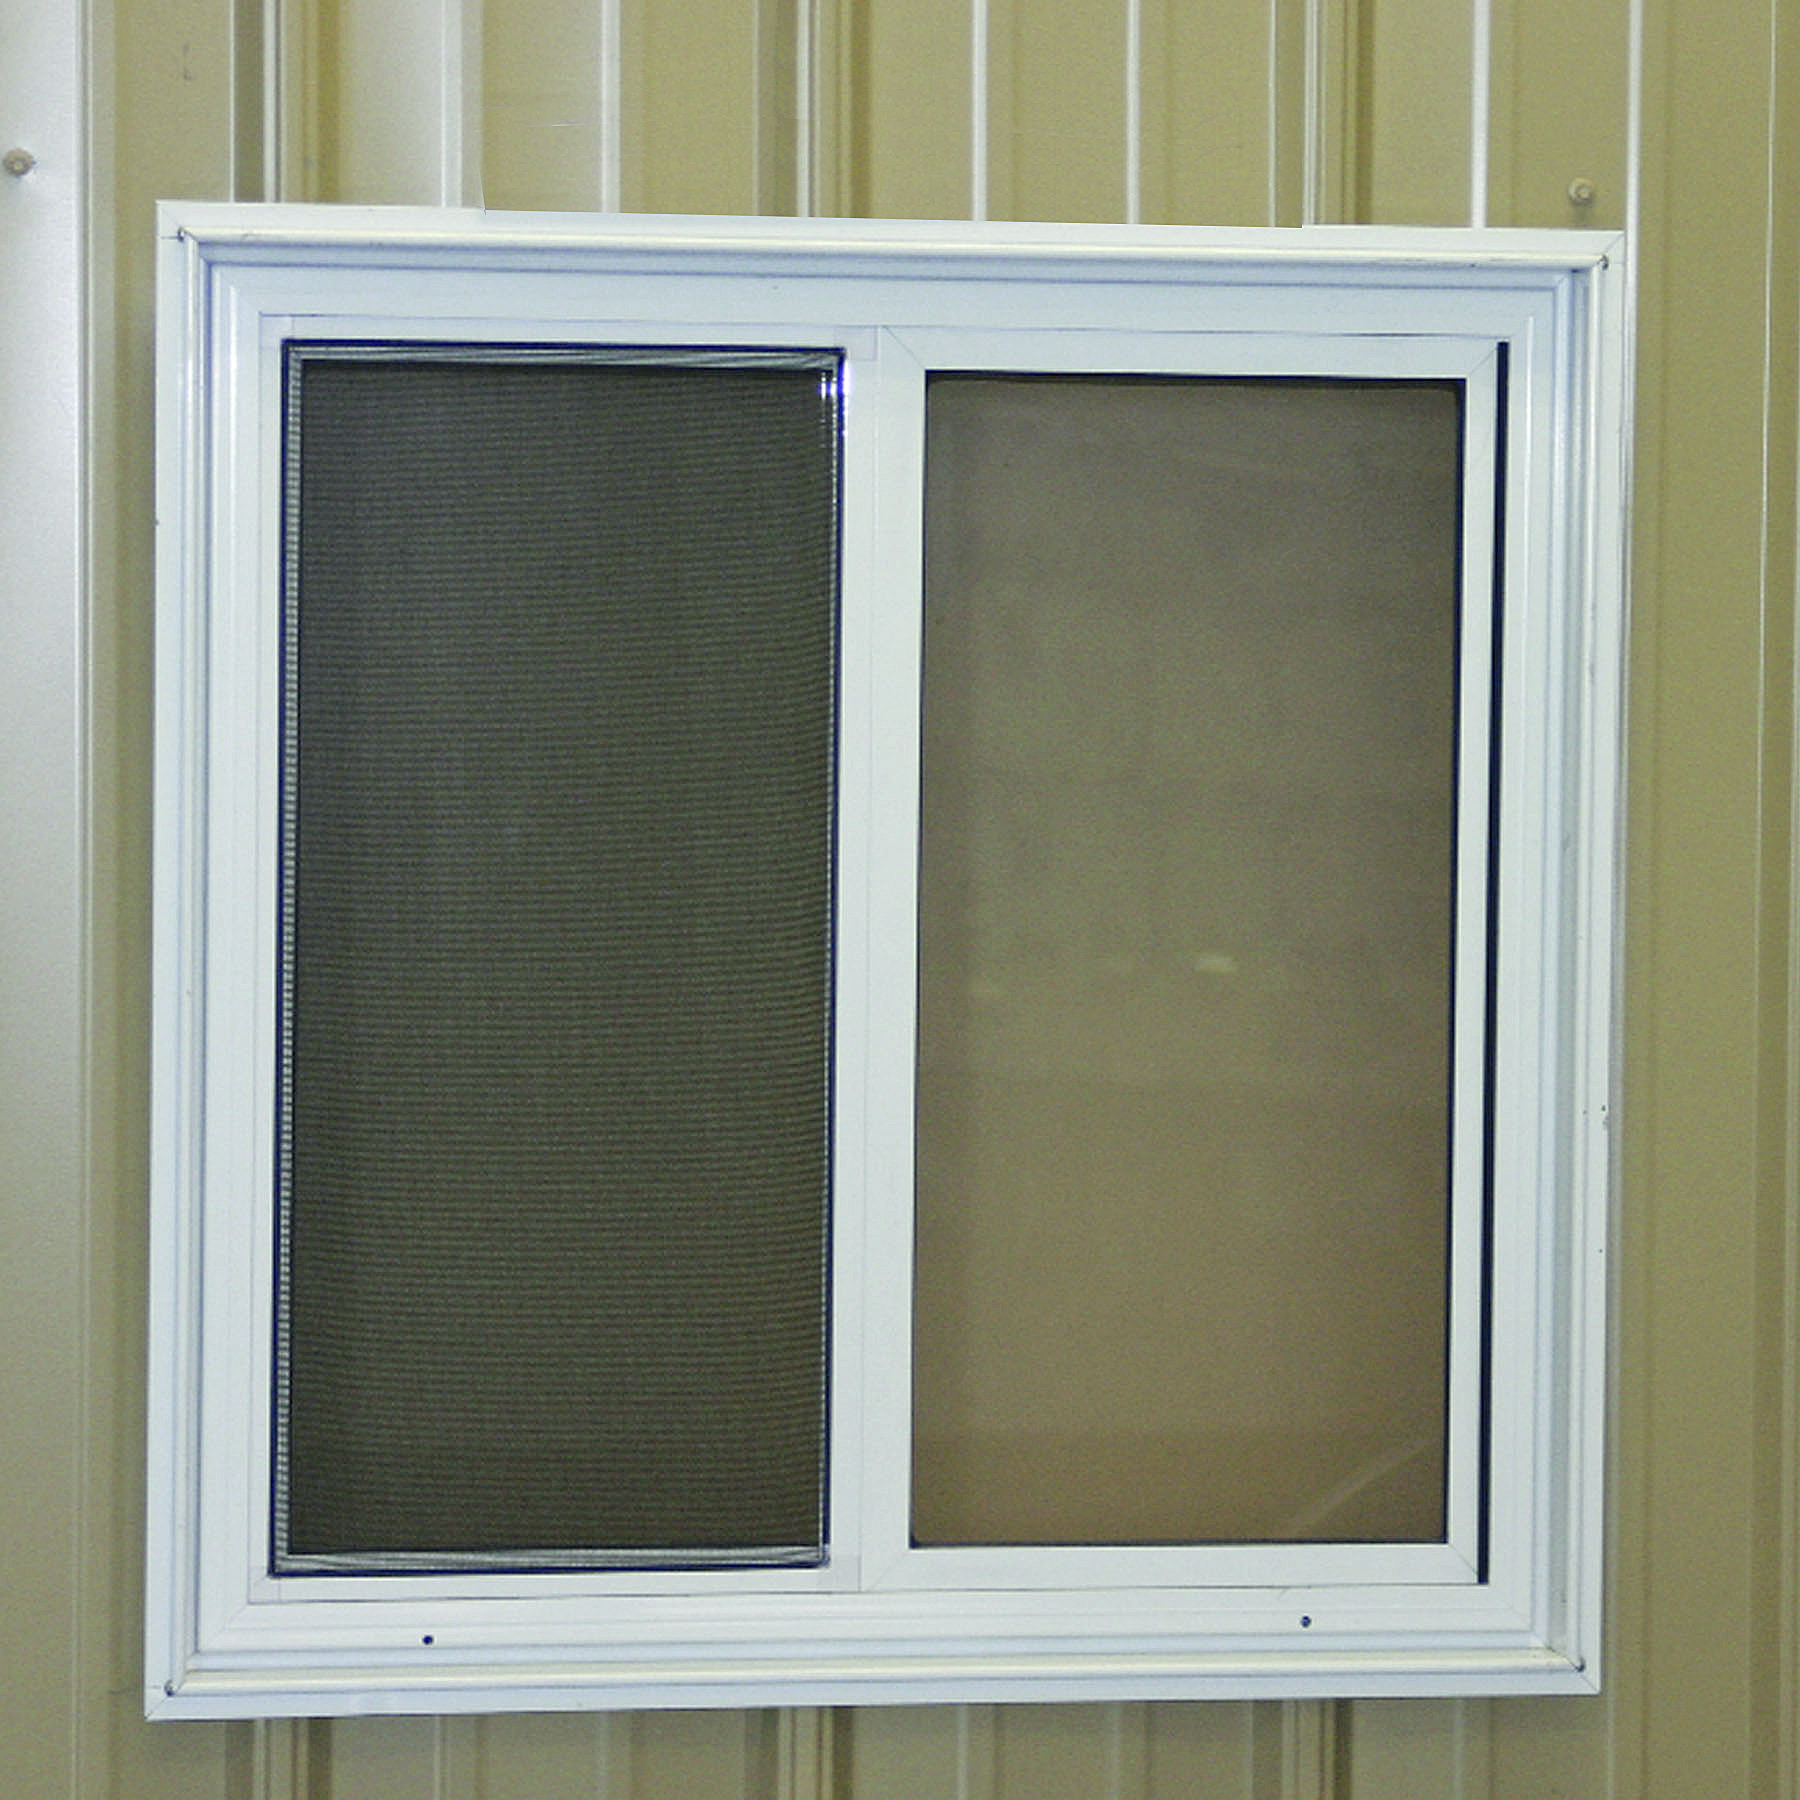 200 Series Windows